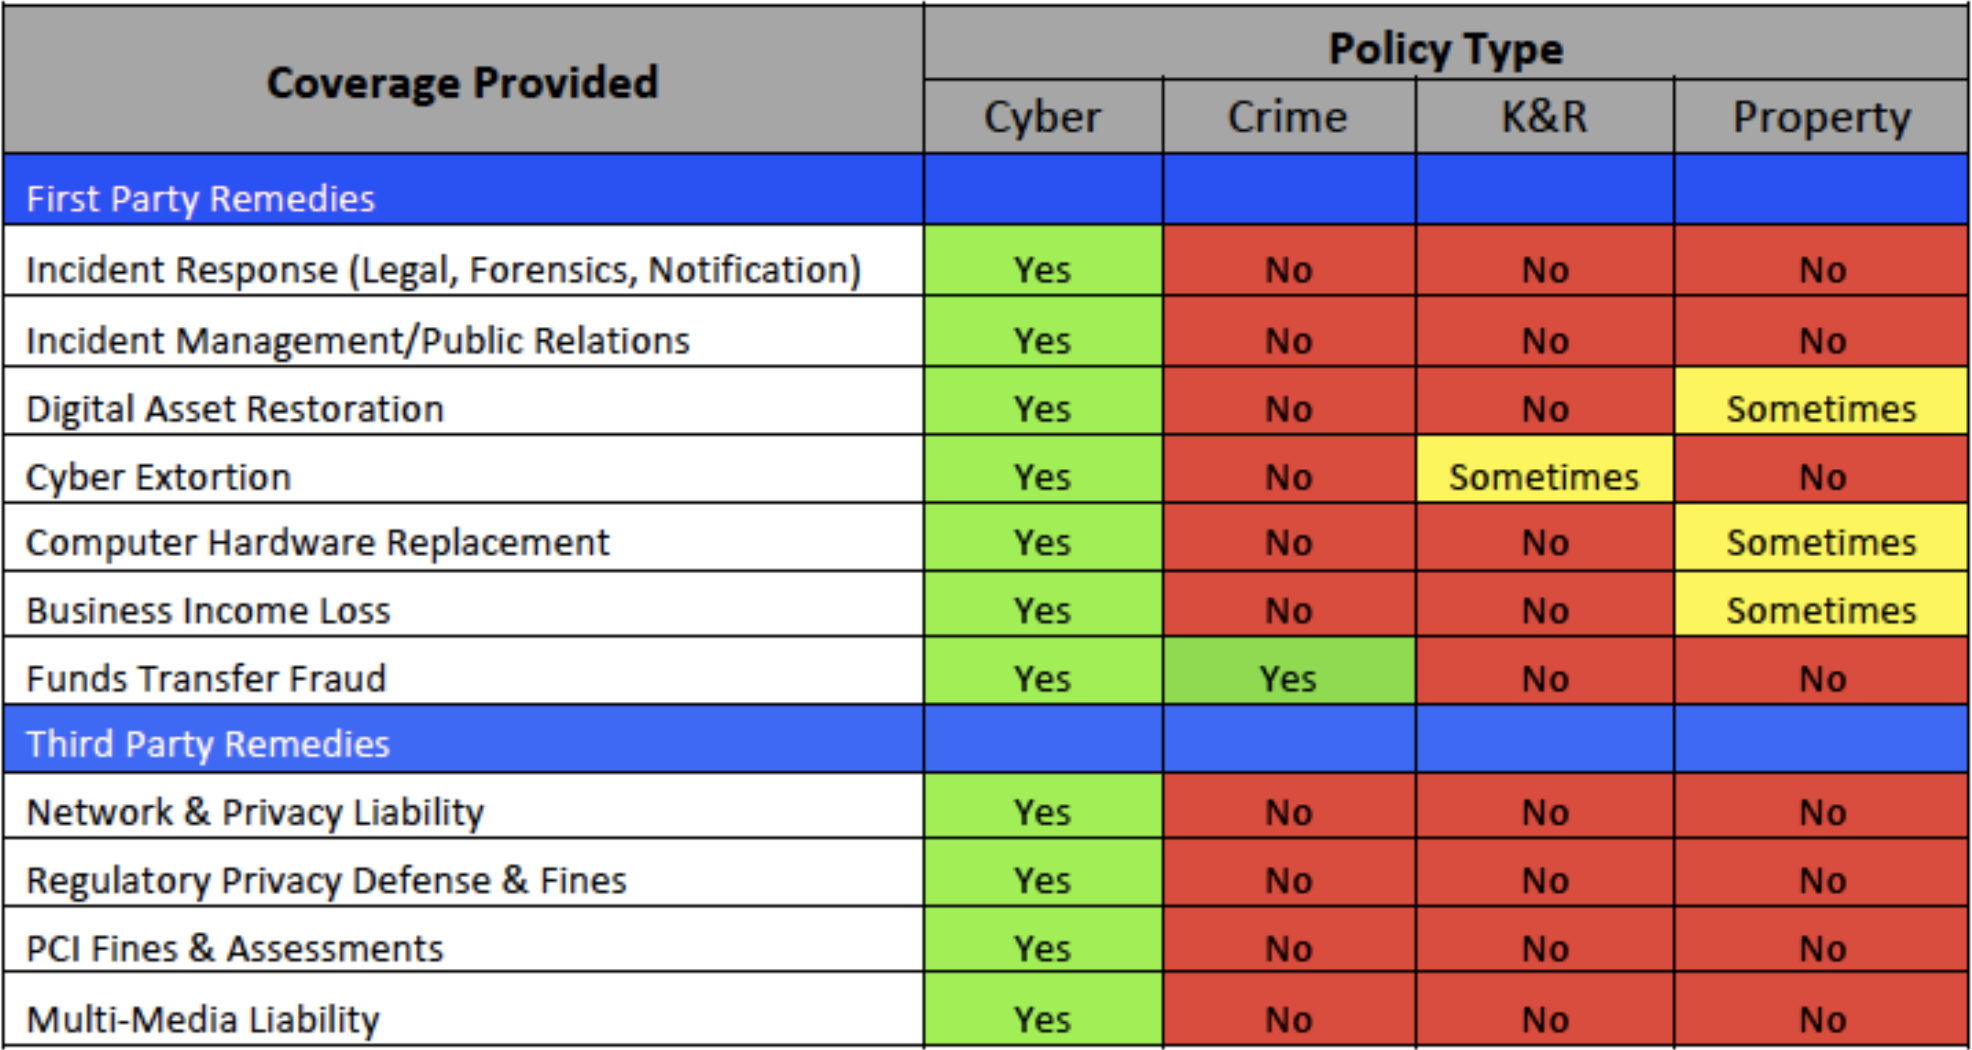 image table showing cyber insurance coverage and policy types